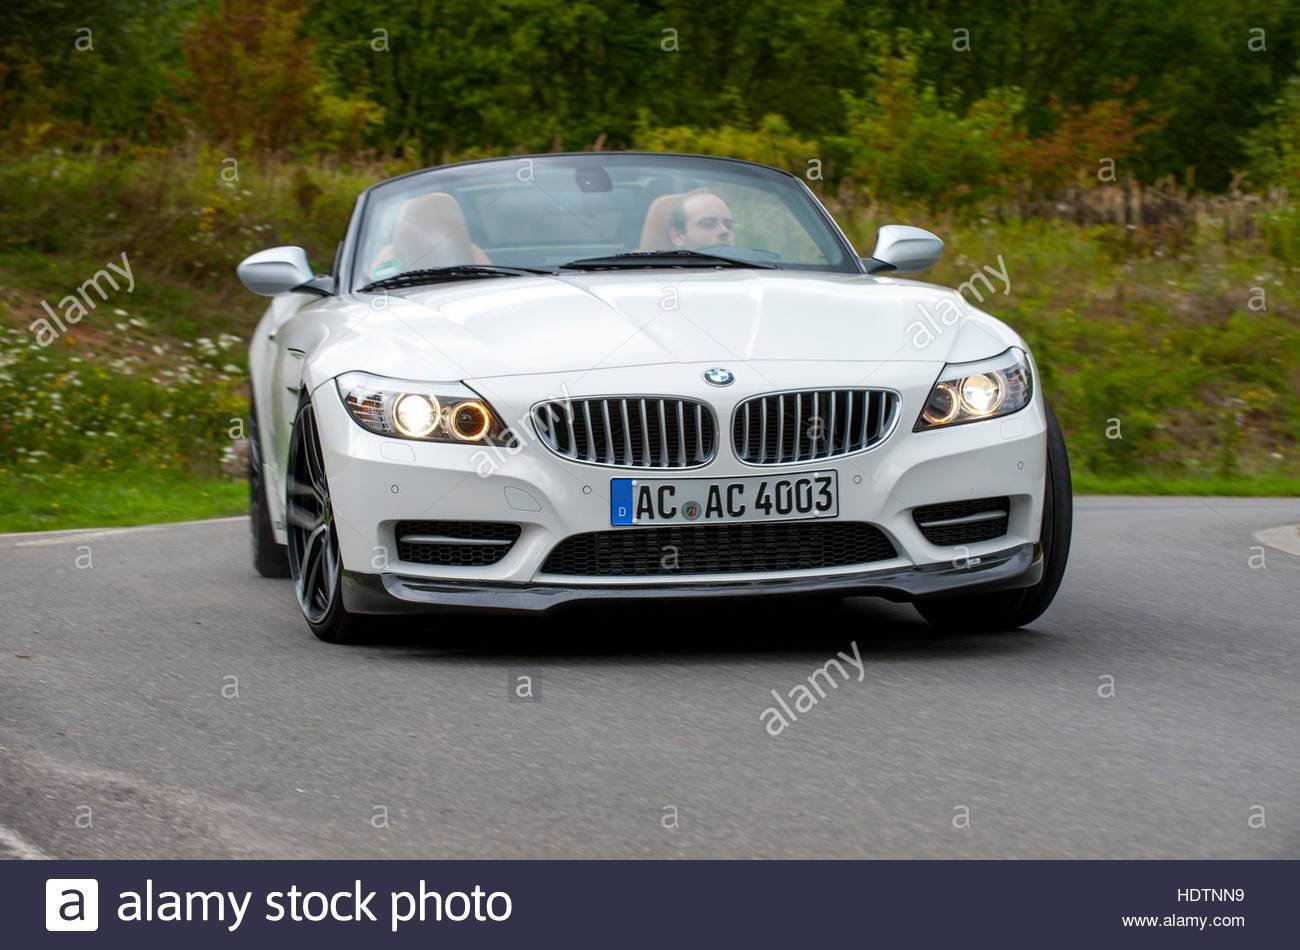 Latest 2010 Ac Schnitzer Bmw Z4M Roadster Sports Car Stock Photo Free Download